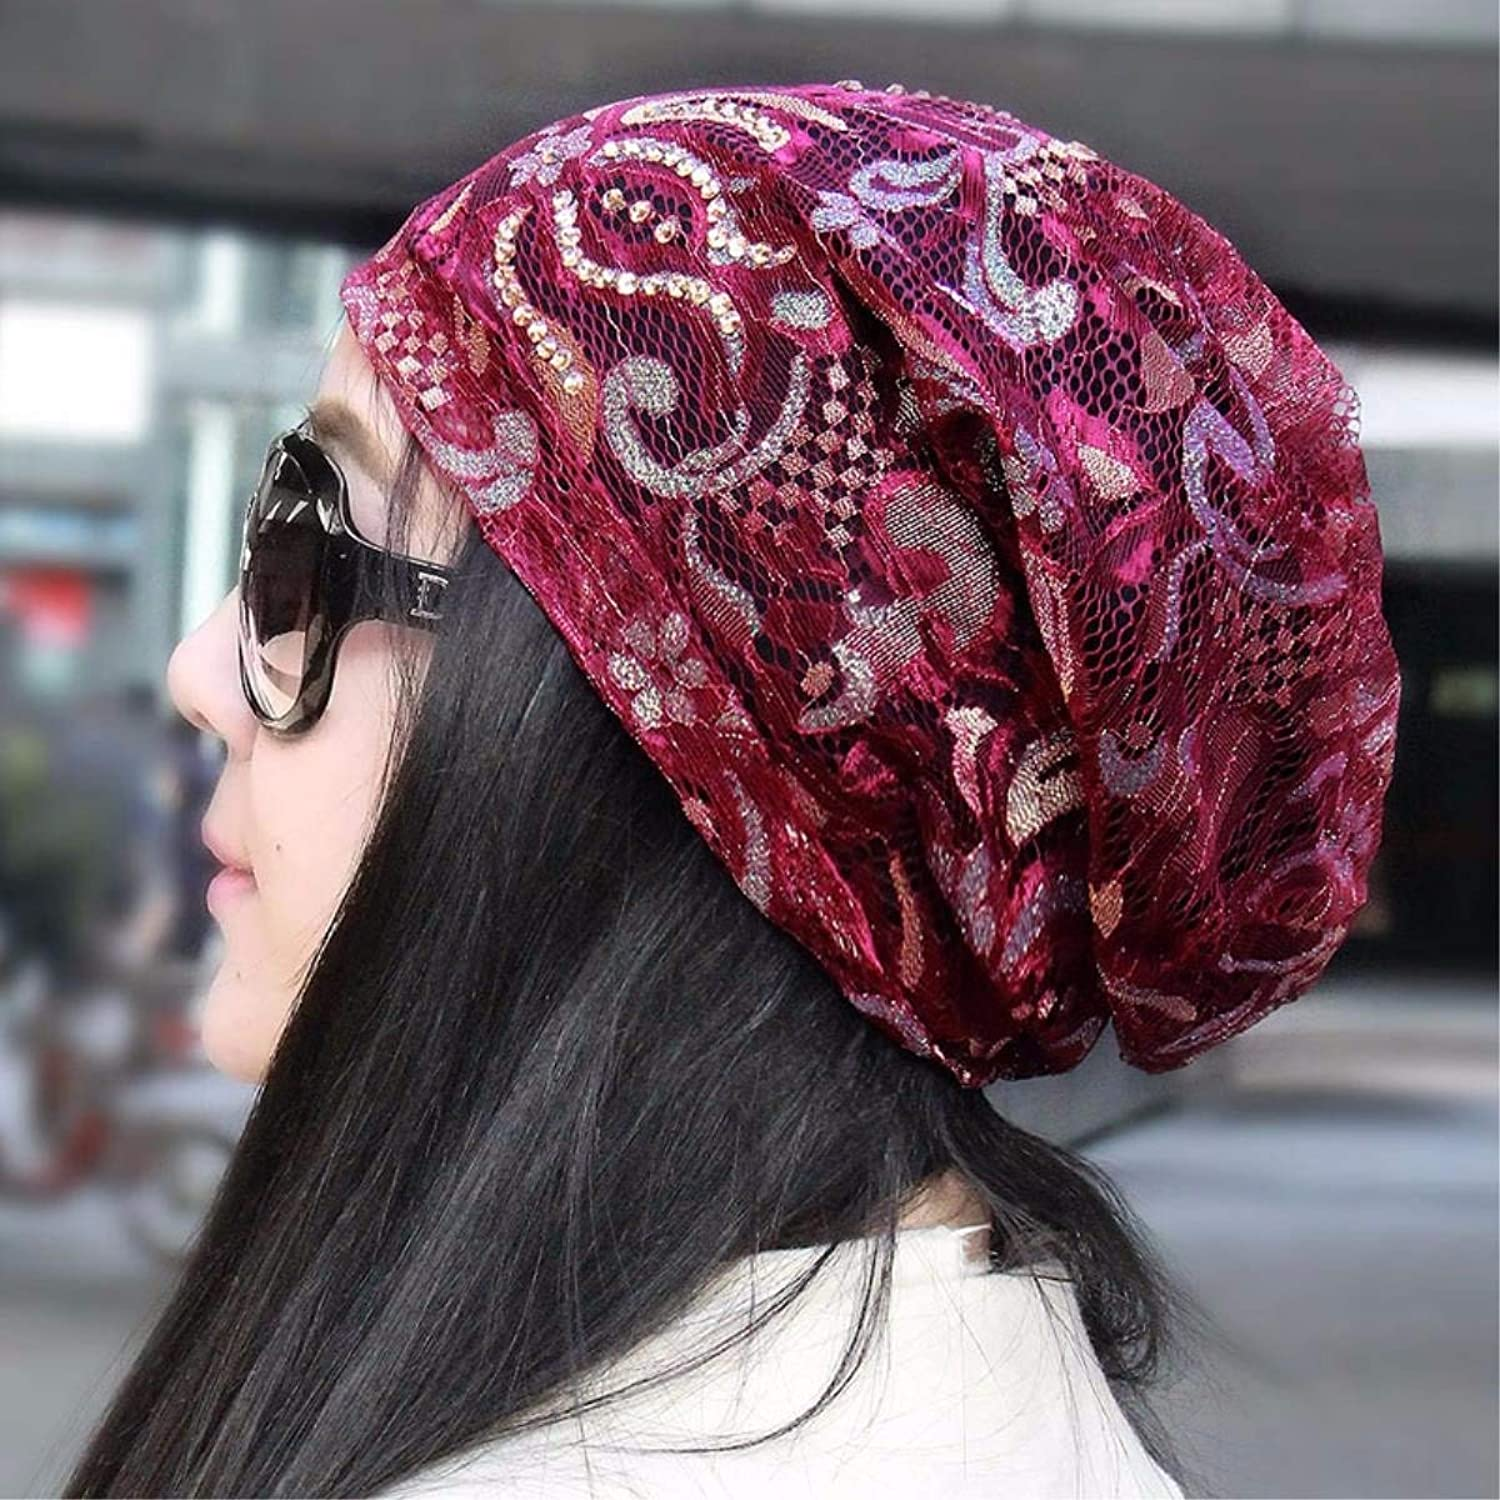 Beach Hat Hat Female Spring and Summer Seasons Cap Brilliant lace Scarf Cap Storehouse Cap Air Conditioning Cap Bald Cap on The Cap Storehouse Summer Sun Hat (color   Pink A)